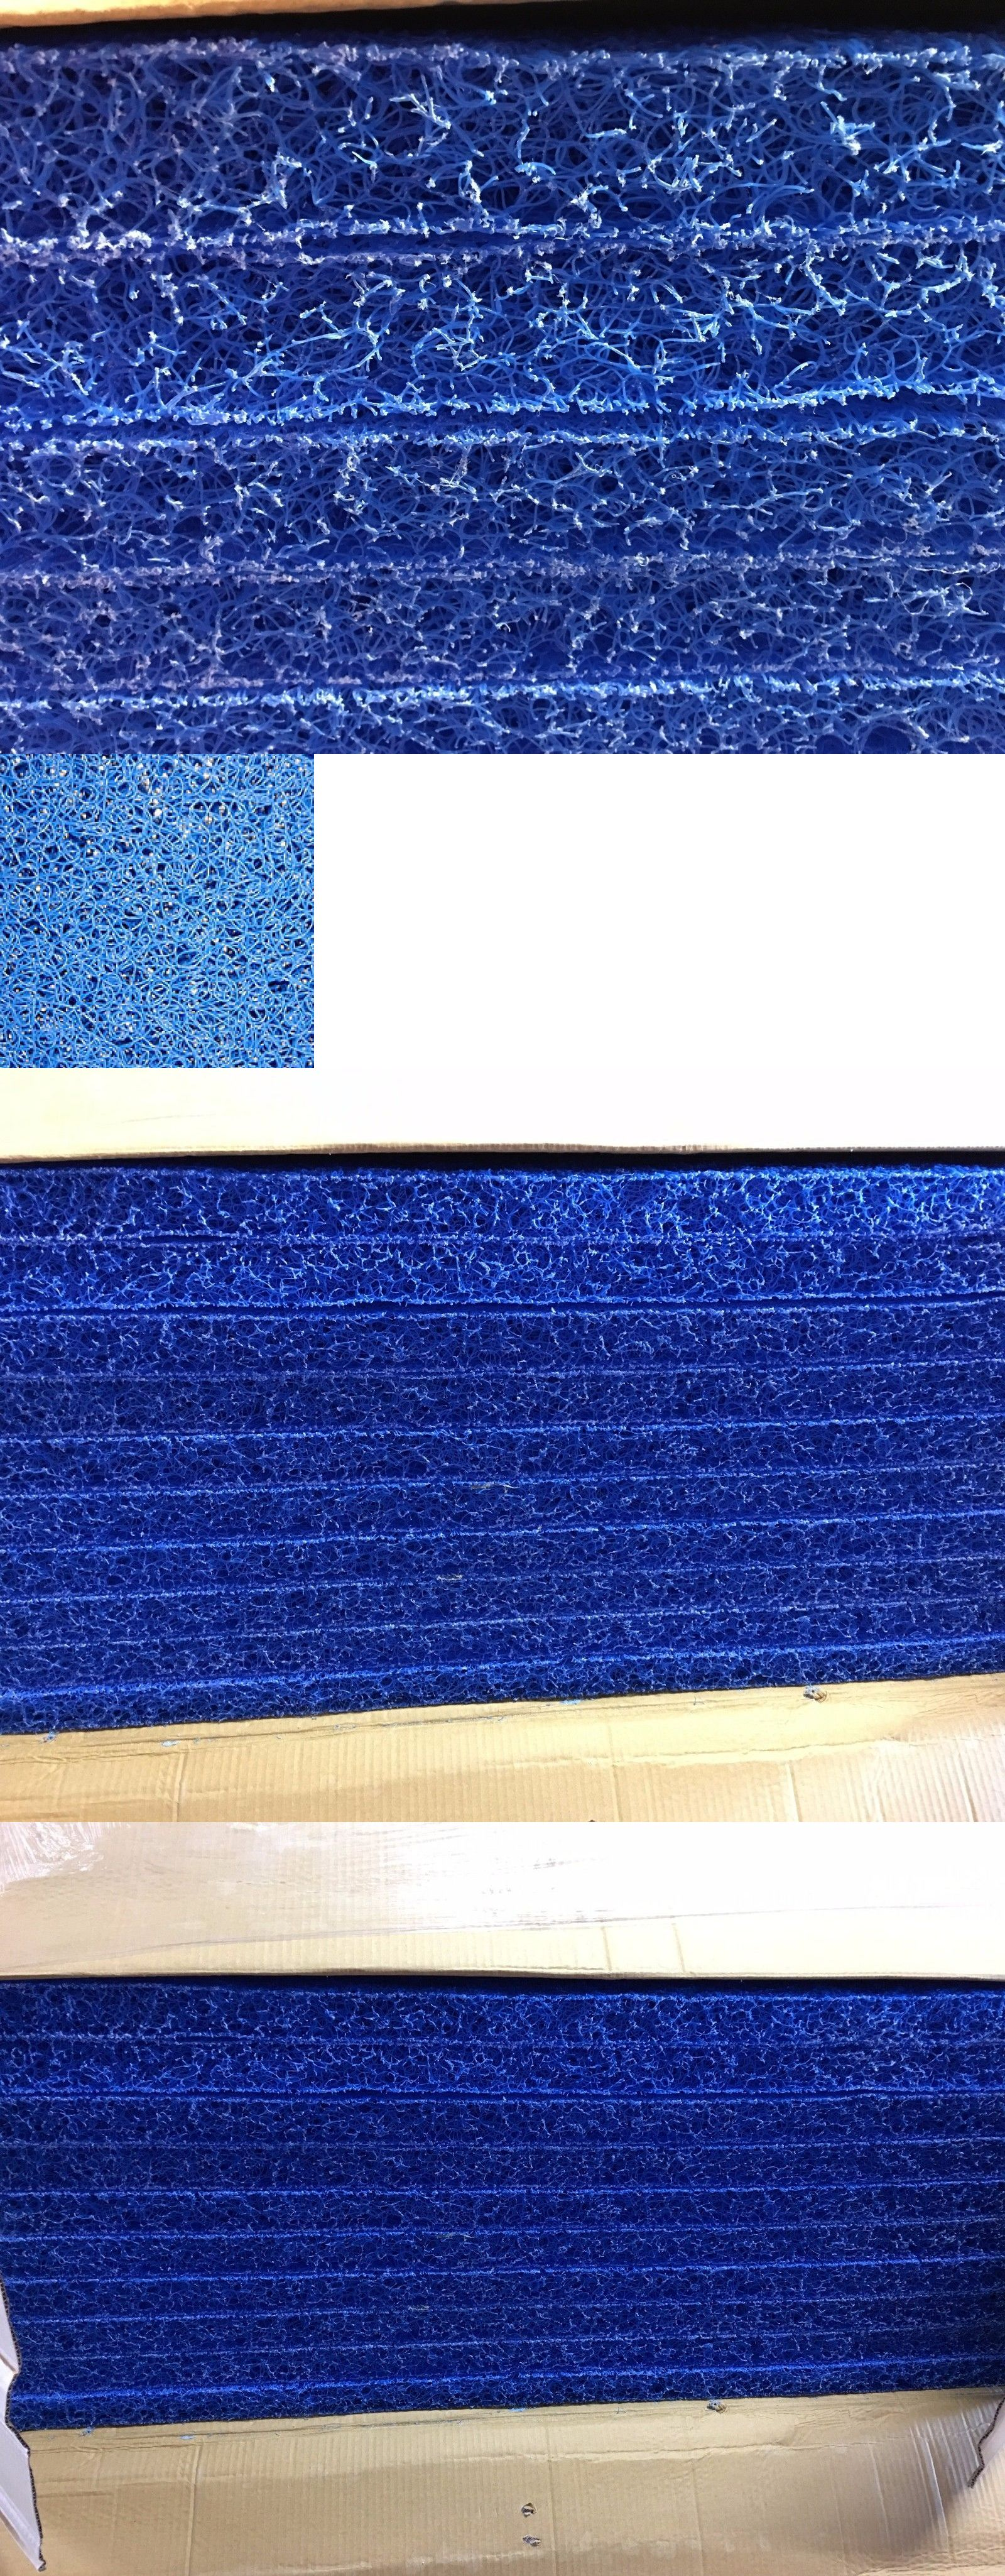 pond filter media and accs case of 10 matala blue high